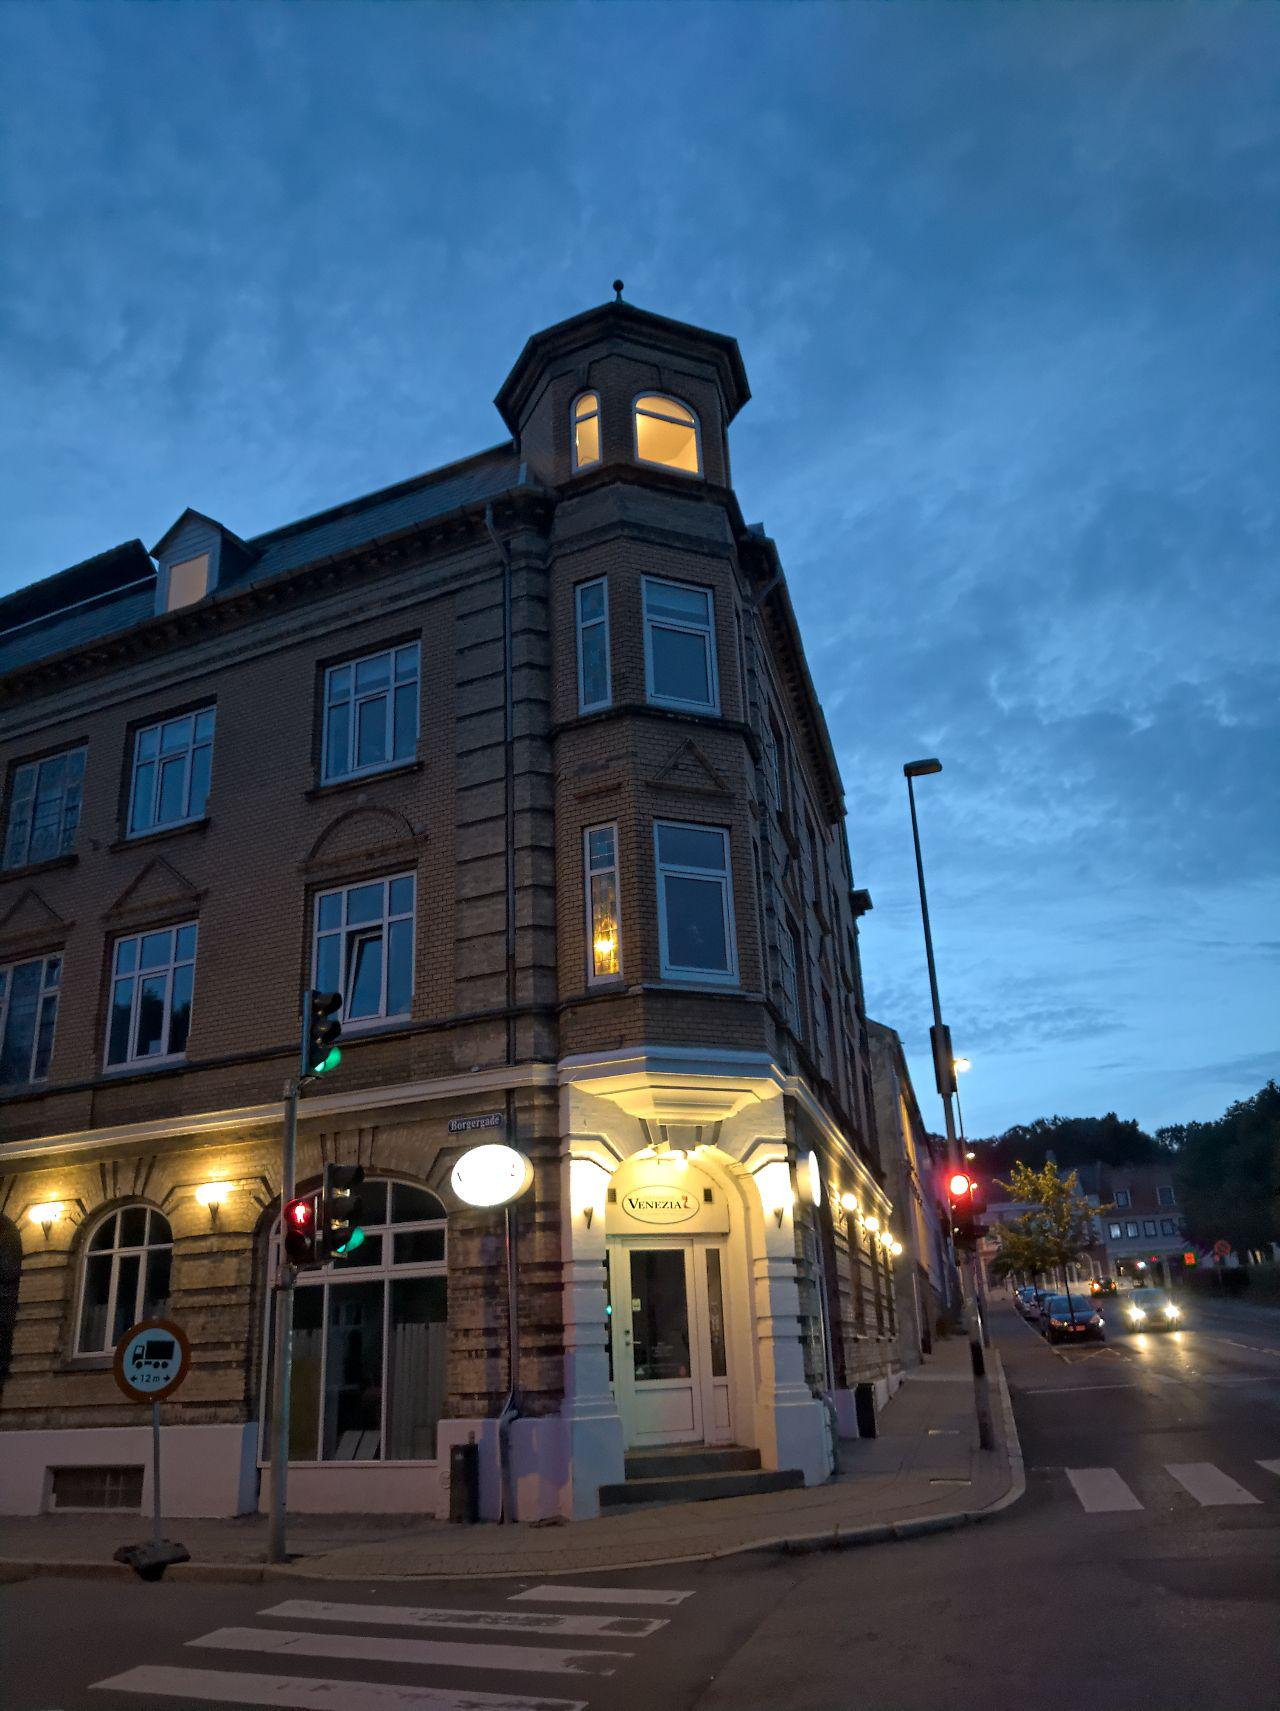 Building and night sky in Horsens